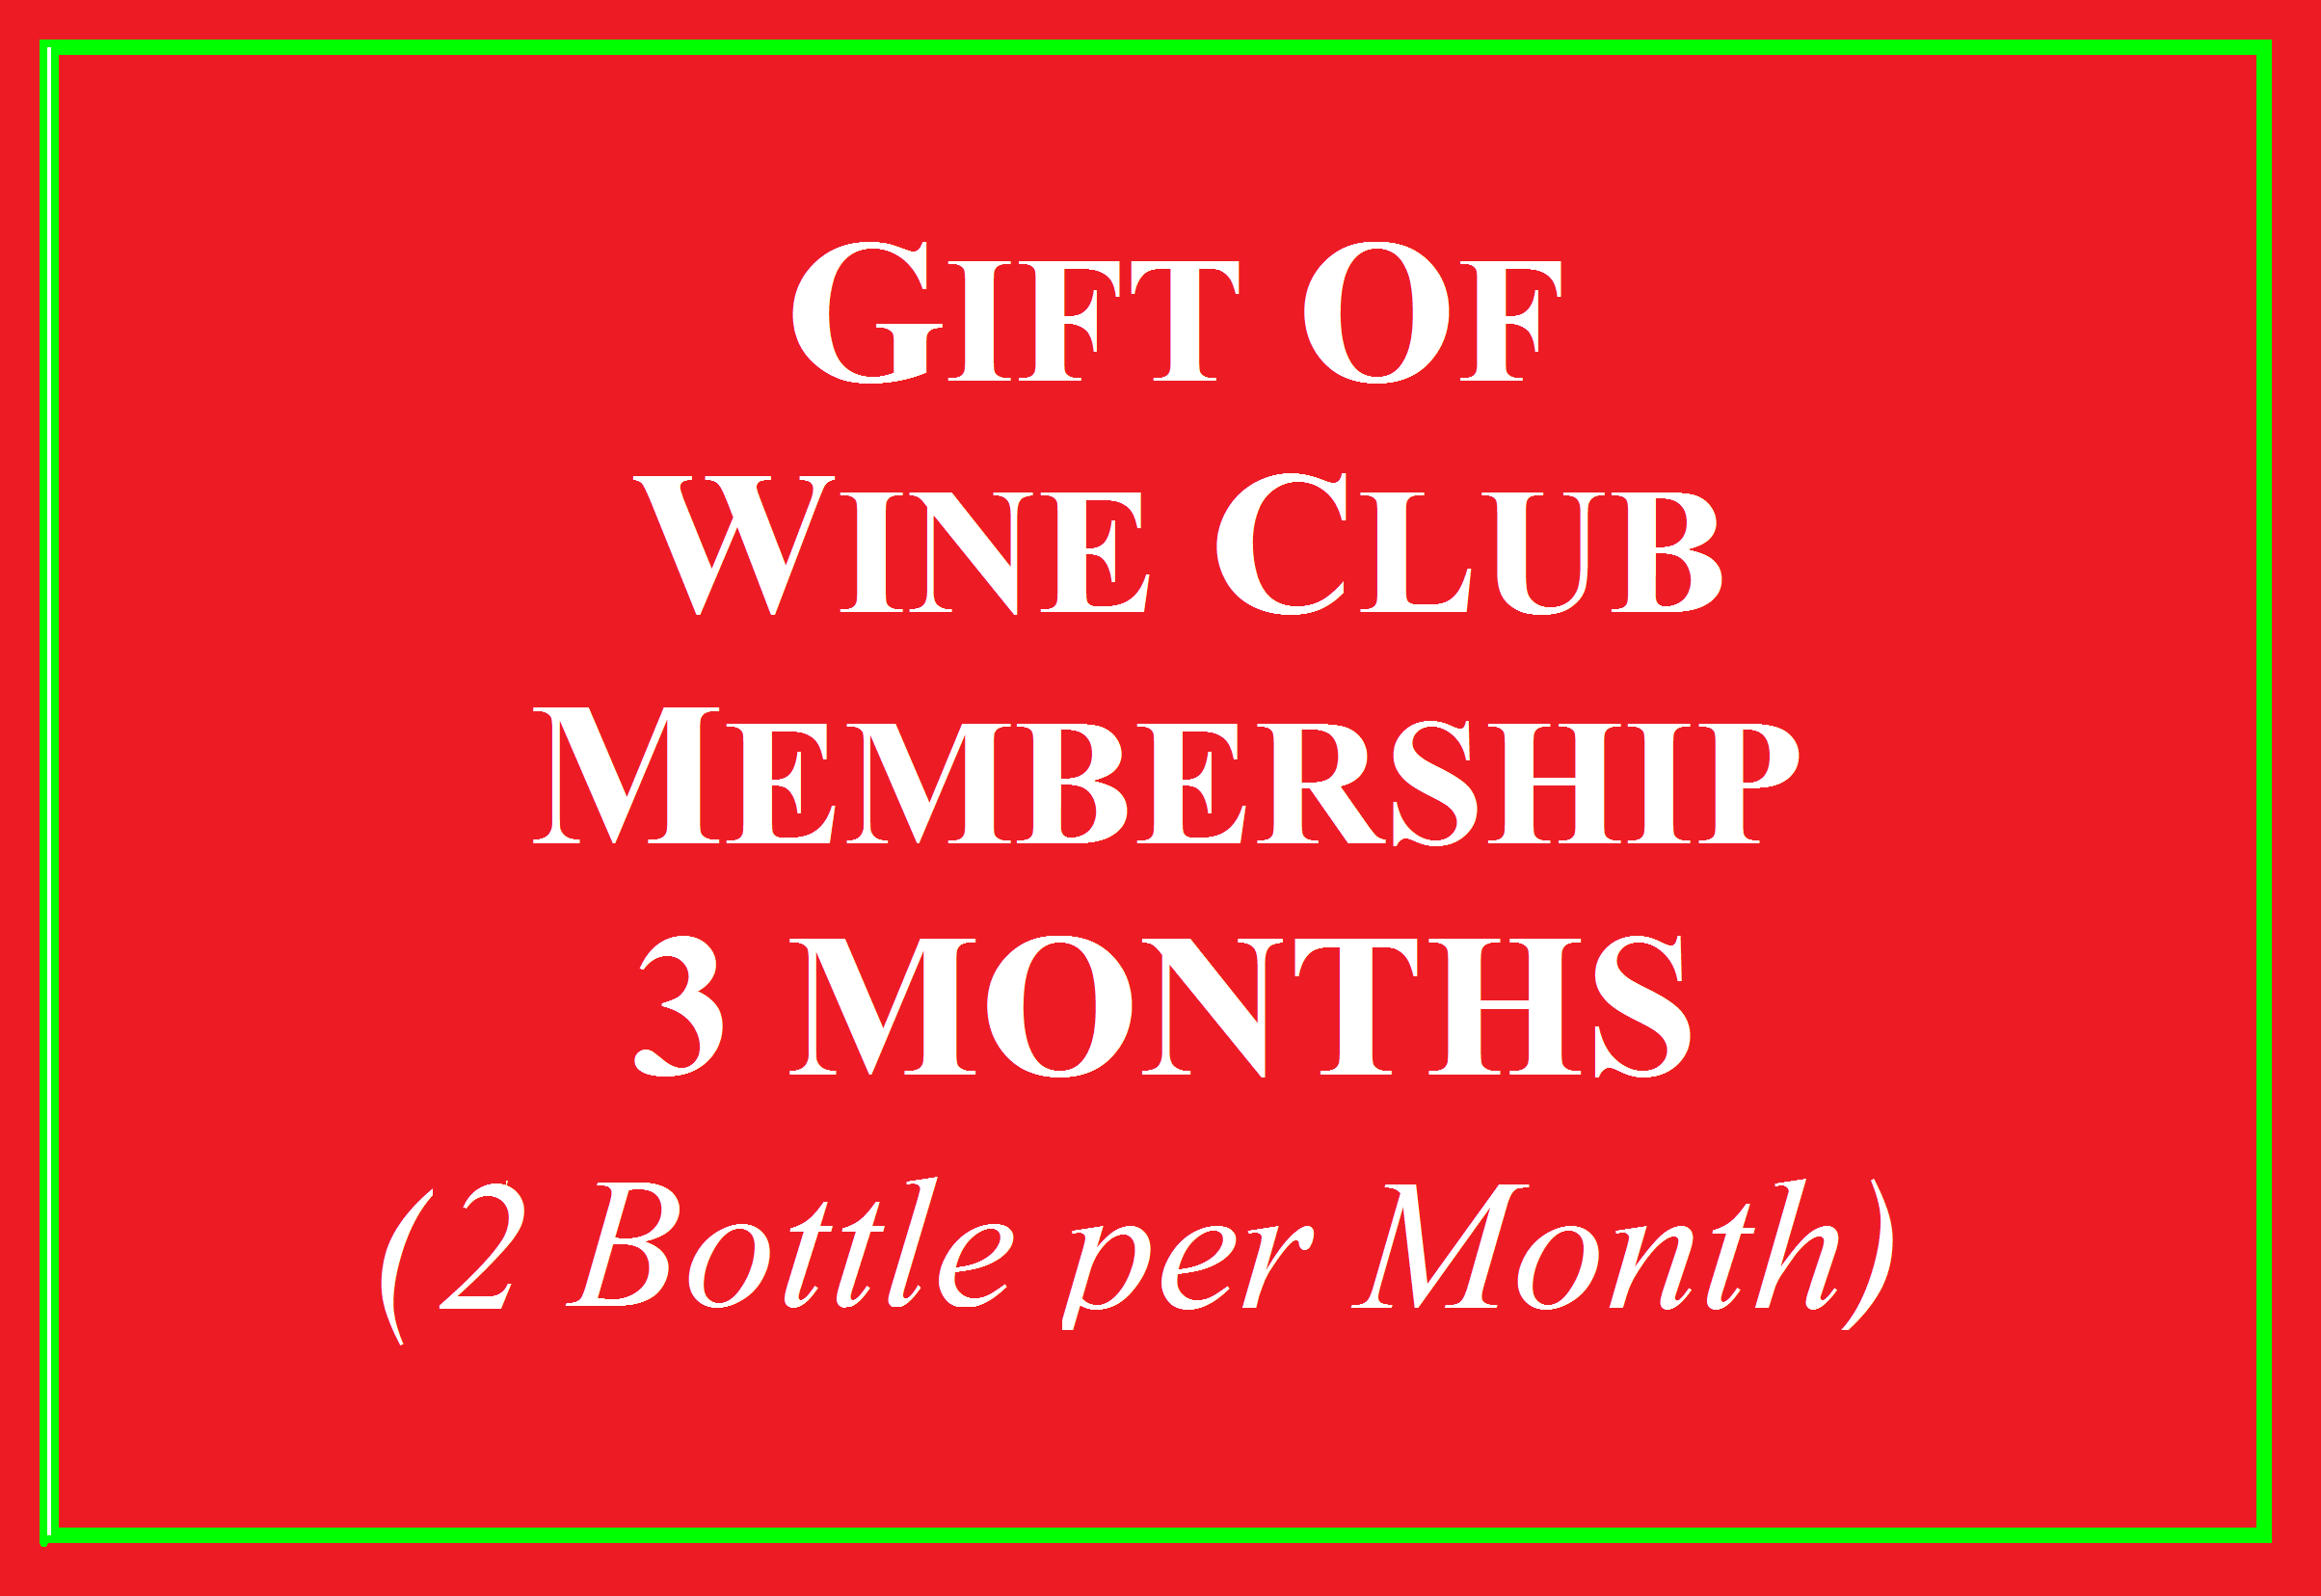 Wine Club Gift for 3 Months 2 Bottle